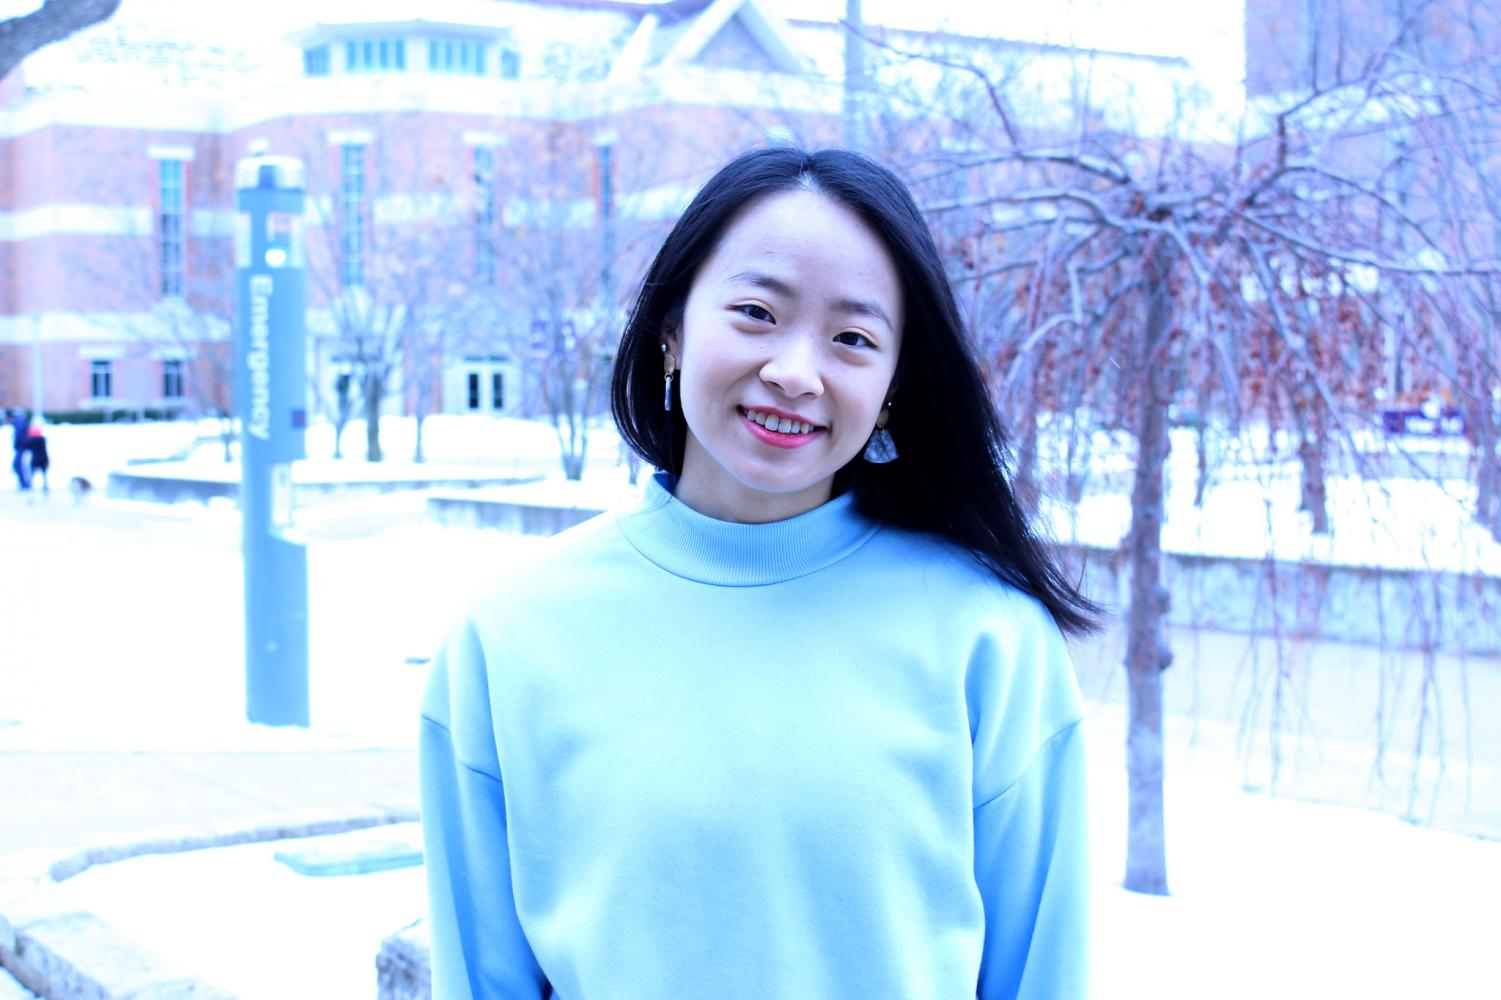 Jiayue Gu is a senior international student from China, majoring in clinical exercise. She is active in many campus organizations and is a peer tutor in Chinese, math, health science, geography and chemistry.